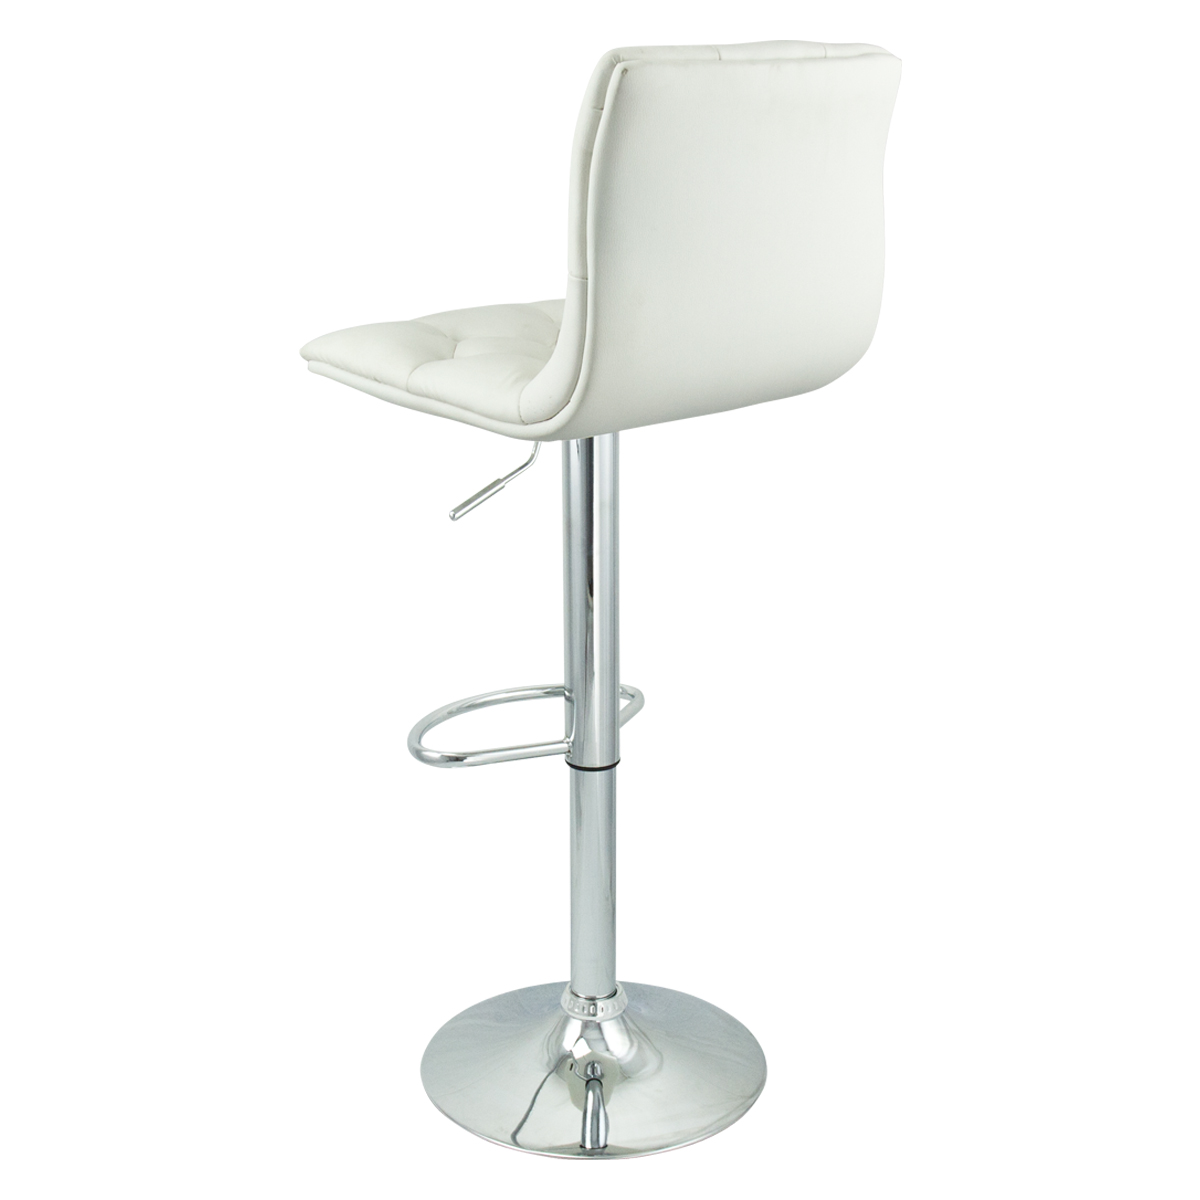 white leather bar chair two seater folding lawn 6 adjustable hydraulic barstool swivel stool